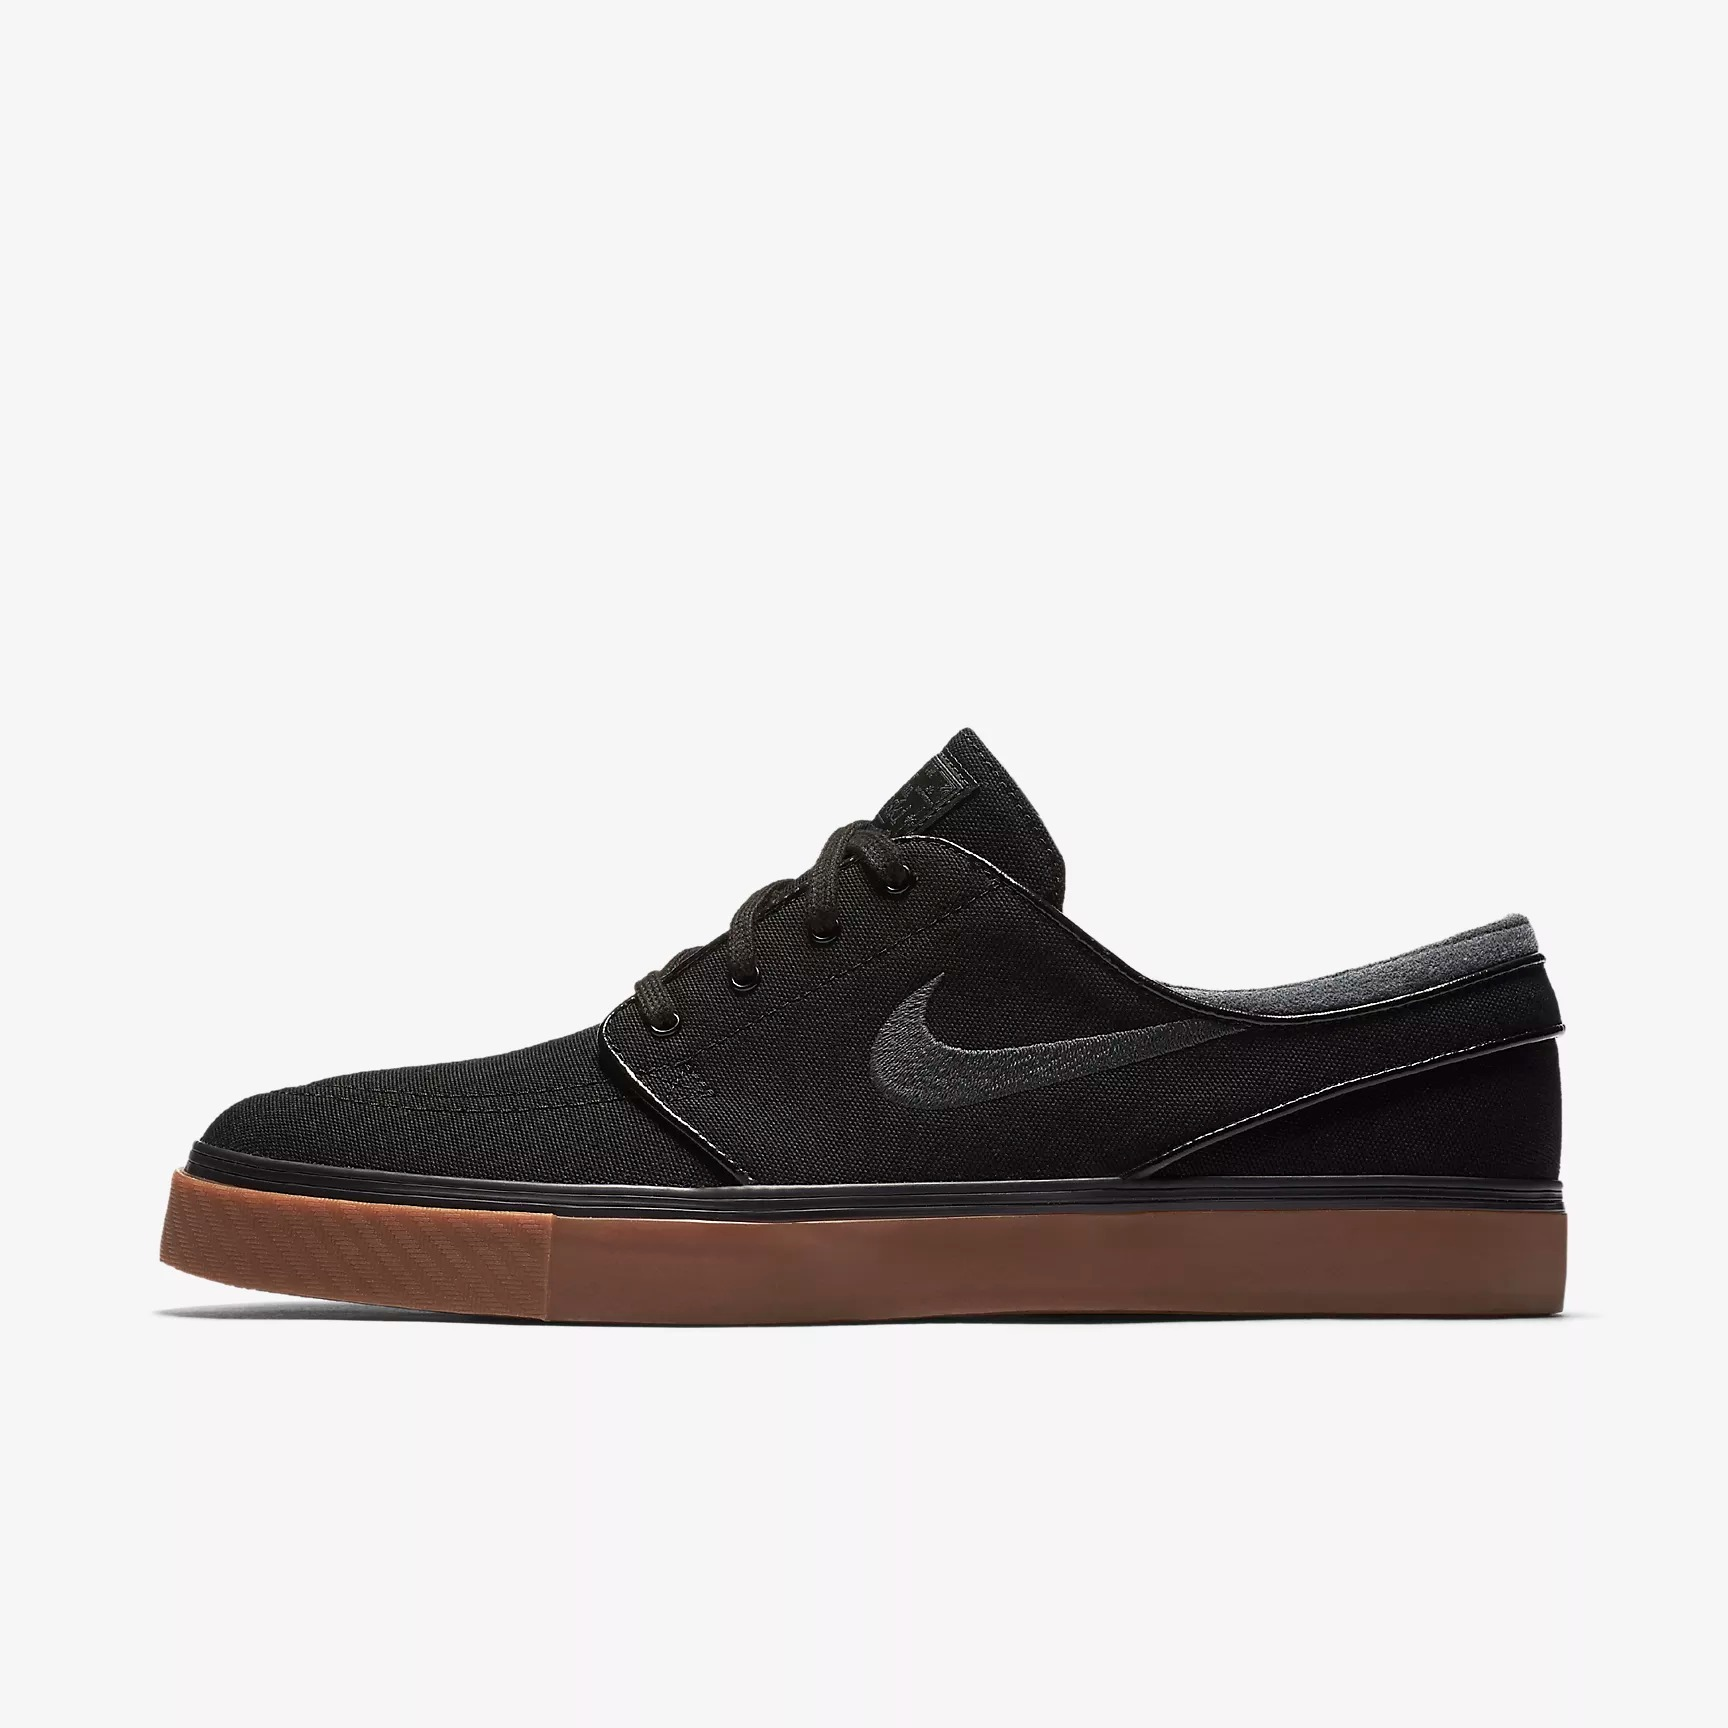 nike sb zoom stefan janoski canvas skateboarding shoes sport shoes athletic shoes and sneakers. Black Bedroom Furniture Sets. Home Design Ideas